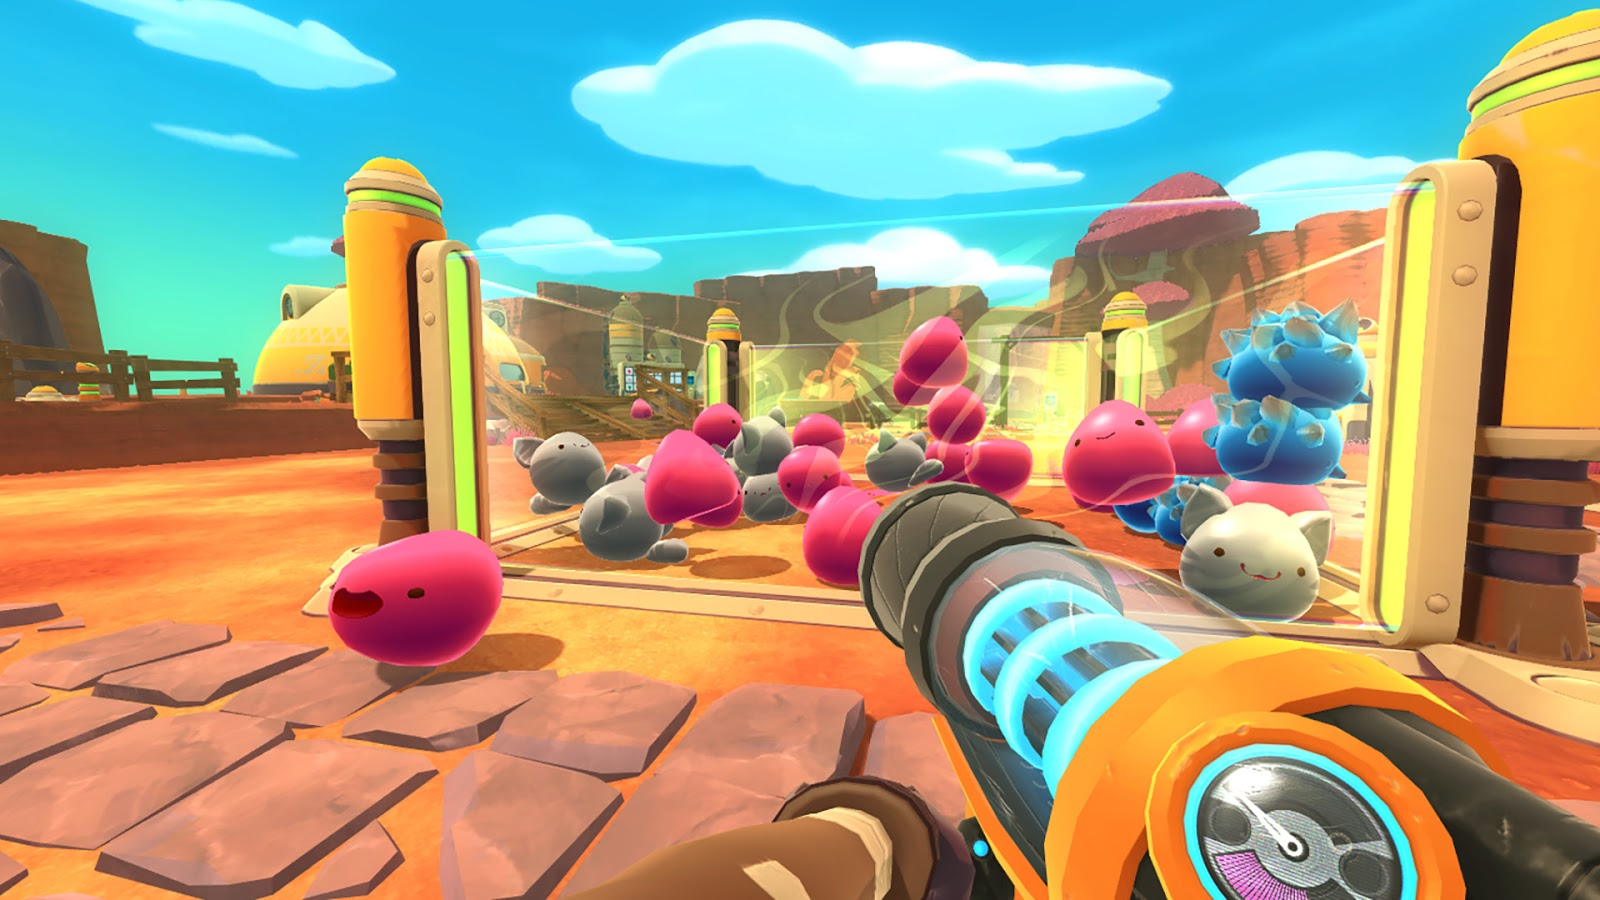 Radiator Blog: Go West young Slime Rancher, and grow up with the country